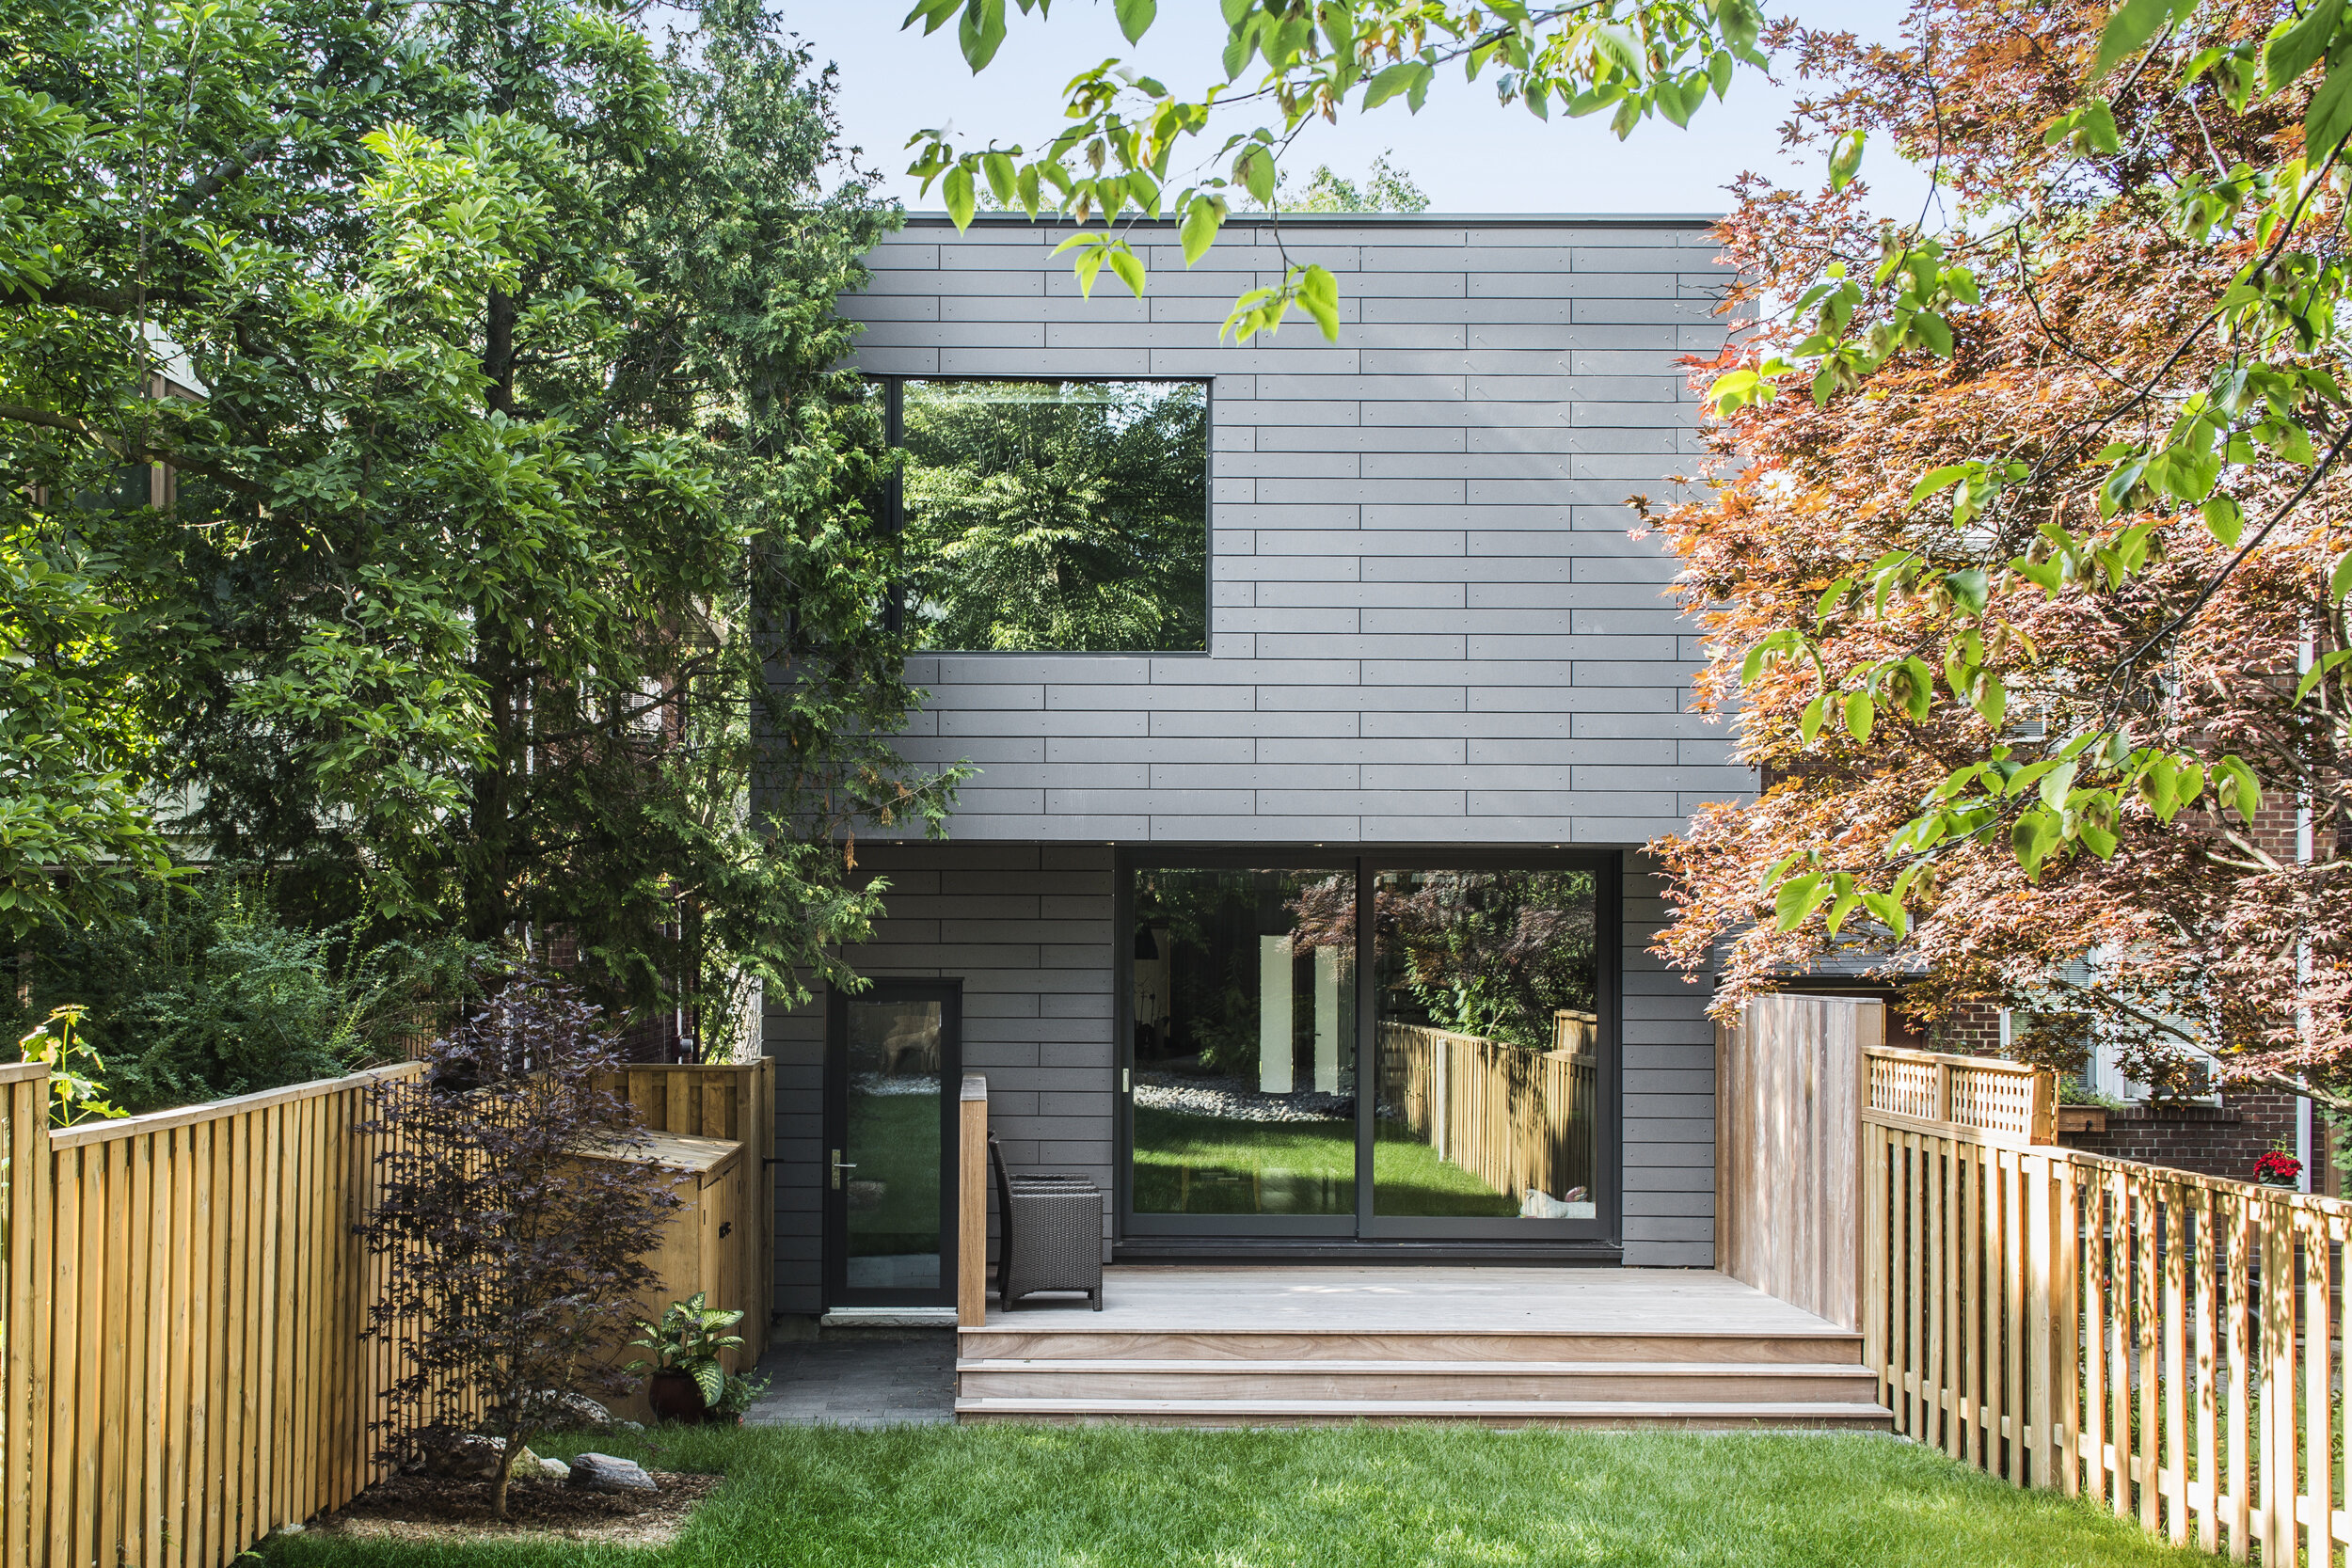 St. Clair | Kyra Clarkson Architect